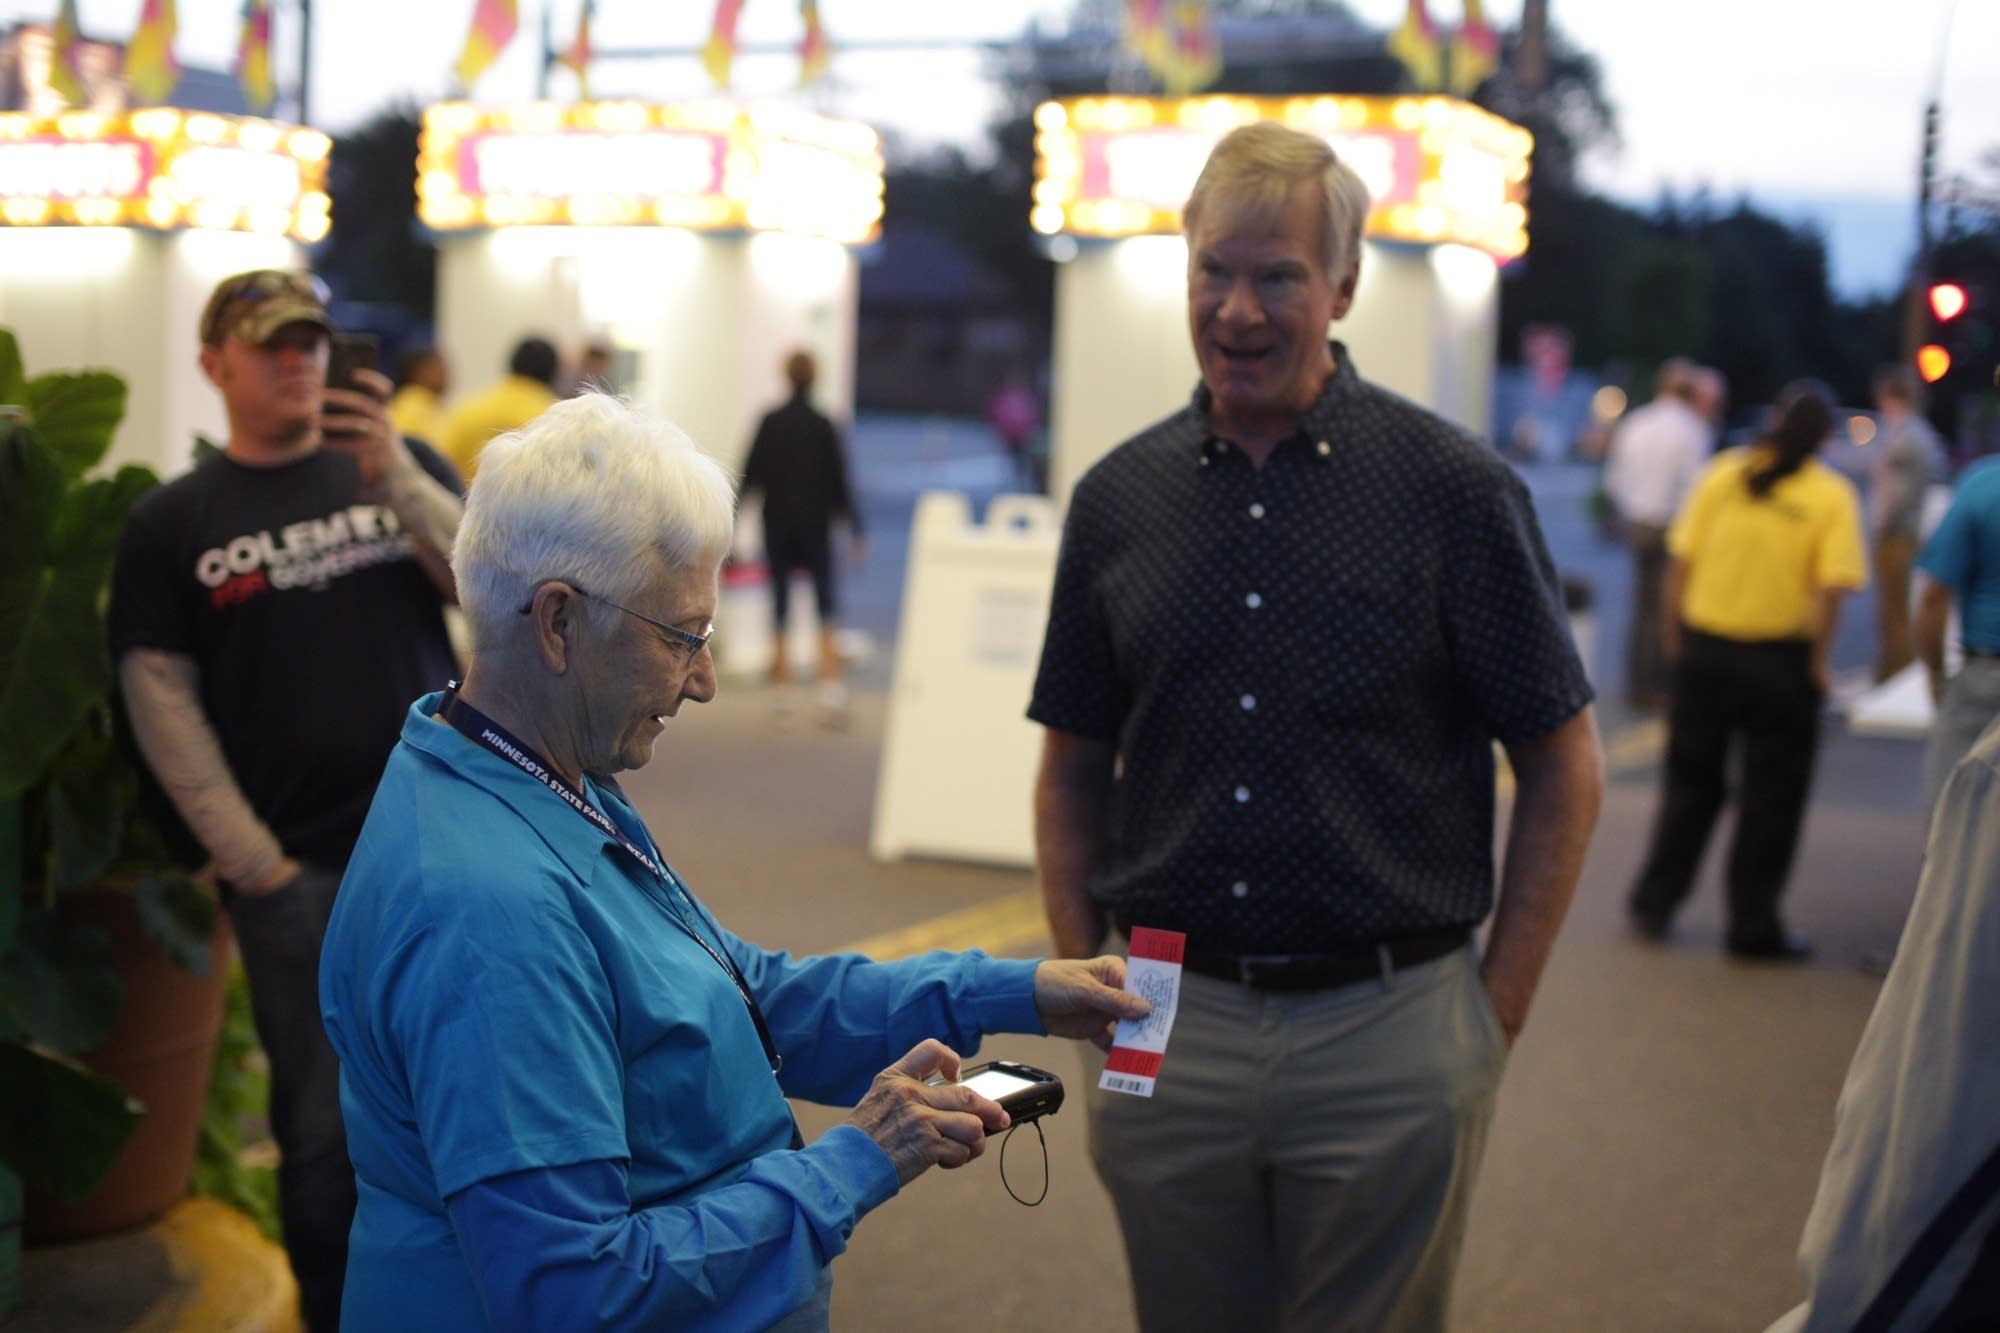 St. Paul Mayor Chris Coleman enters the Minnesota State Fair.